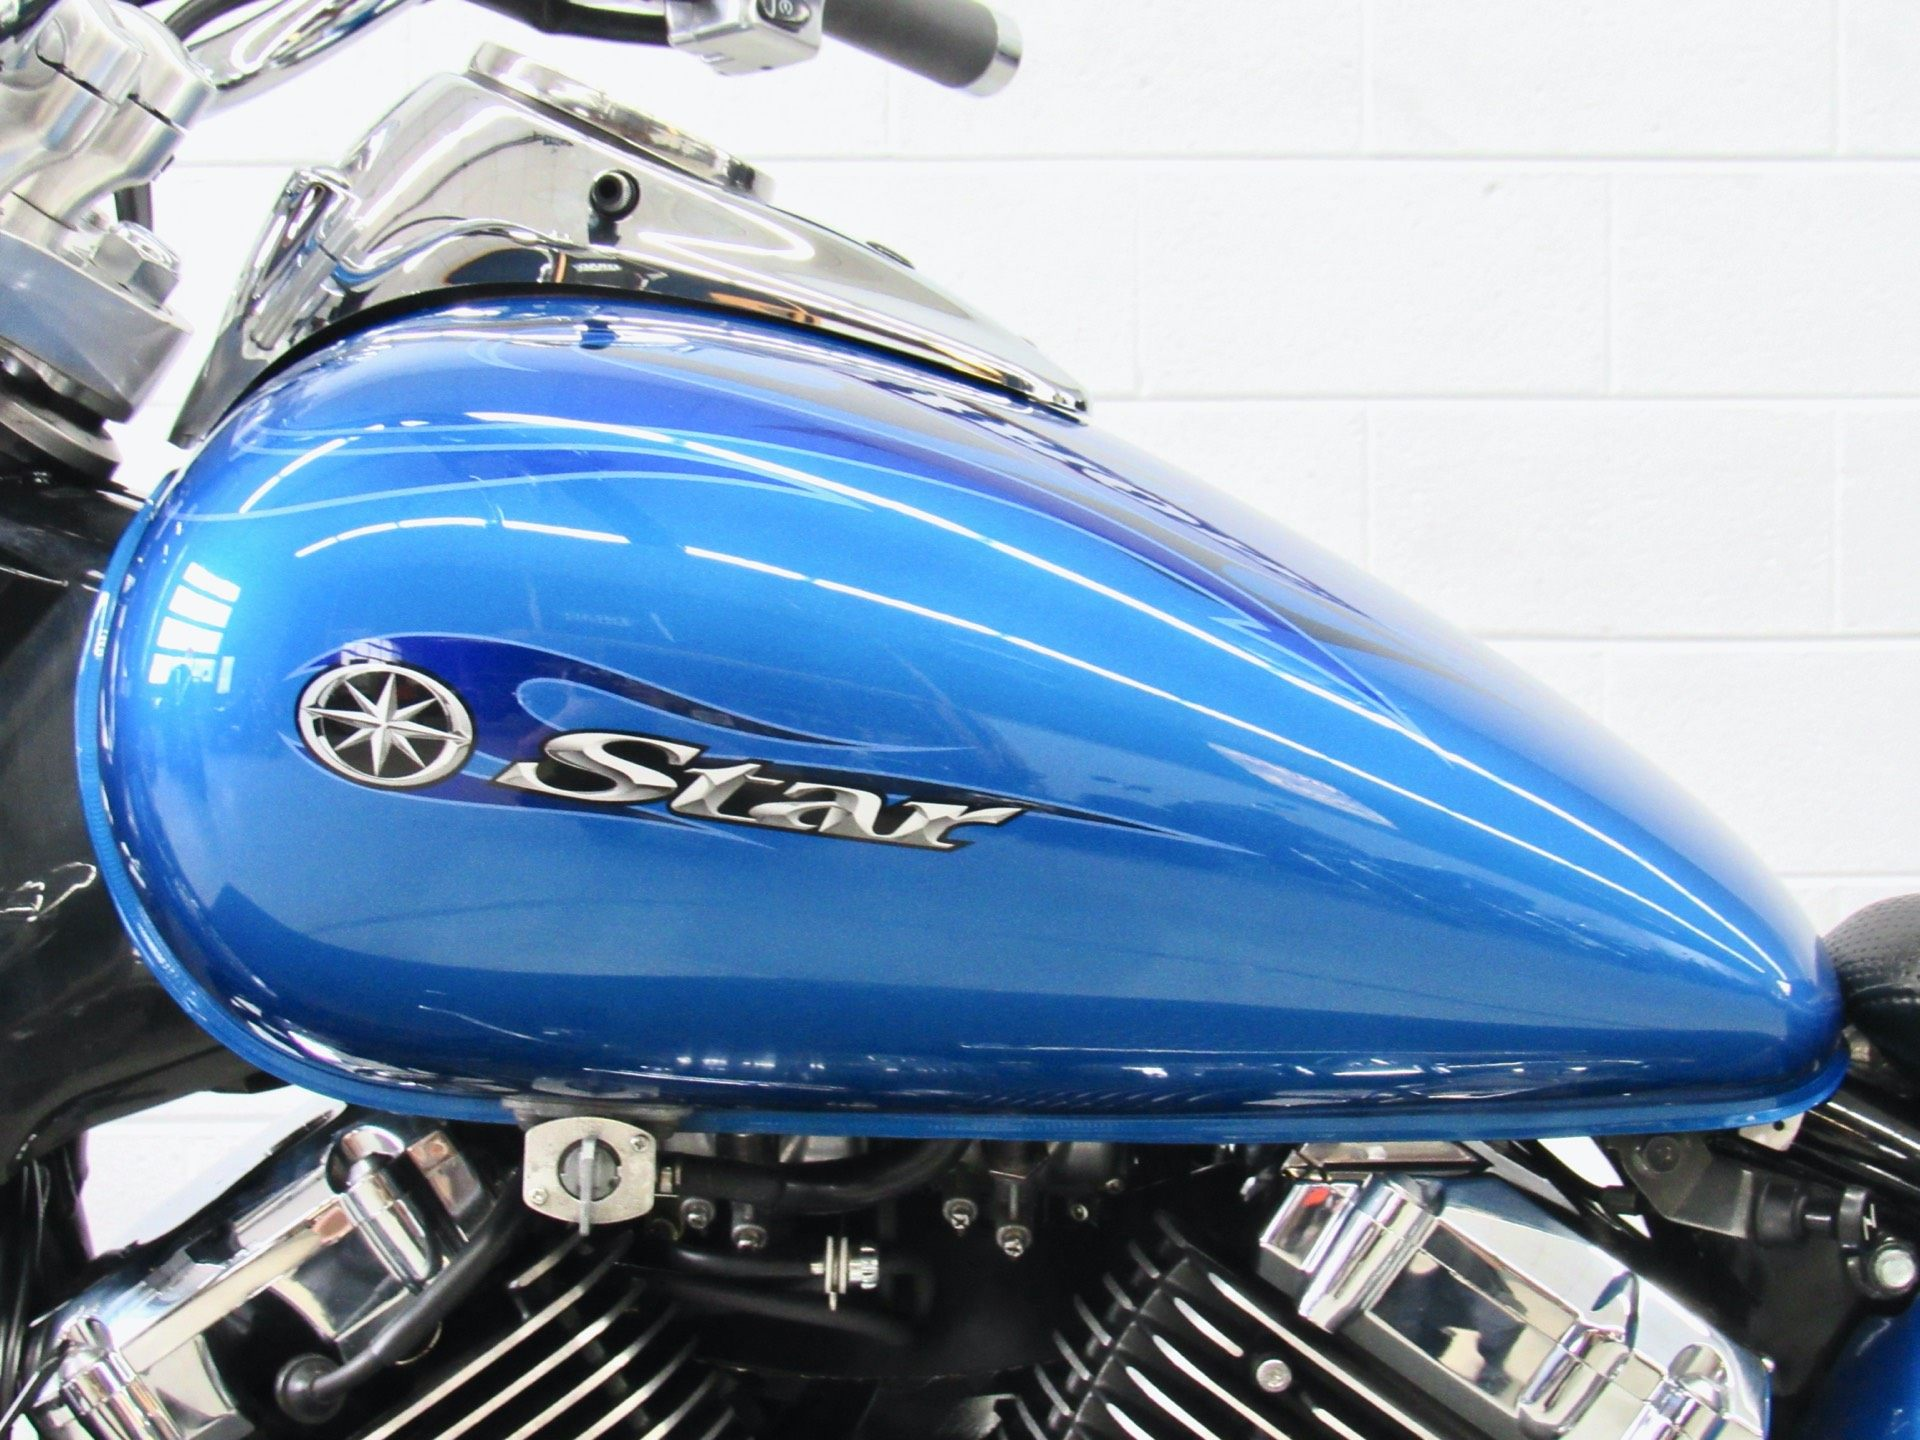 2009 Yamaha V Star 650 Custom in Fredericksburg, Virginia - Photo 17